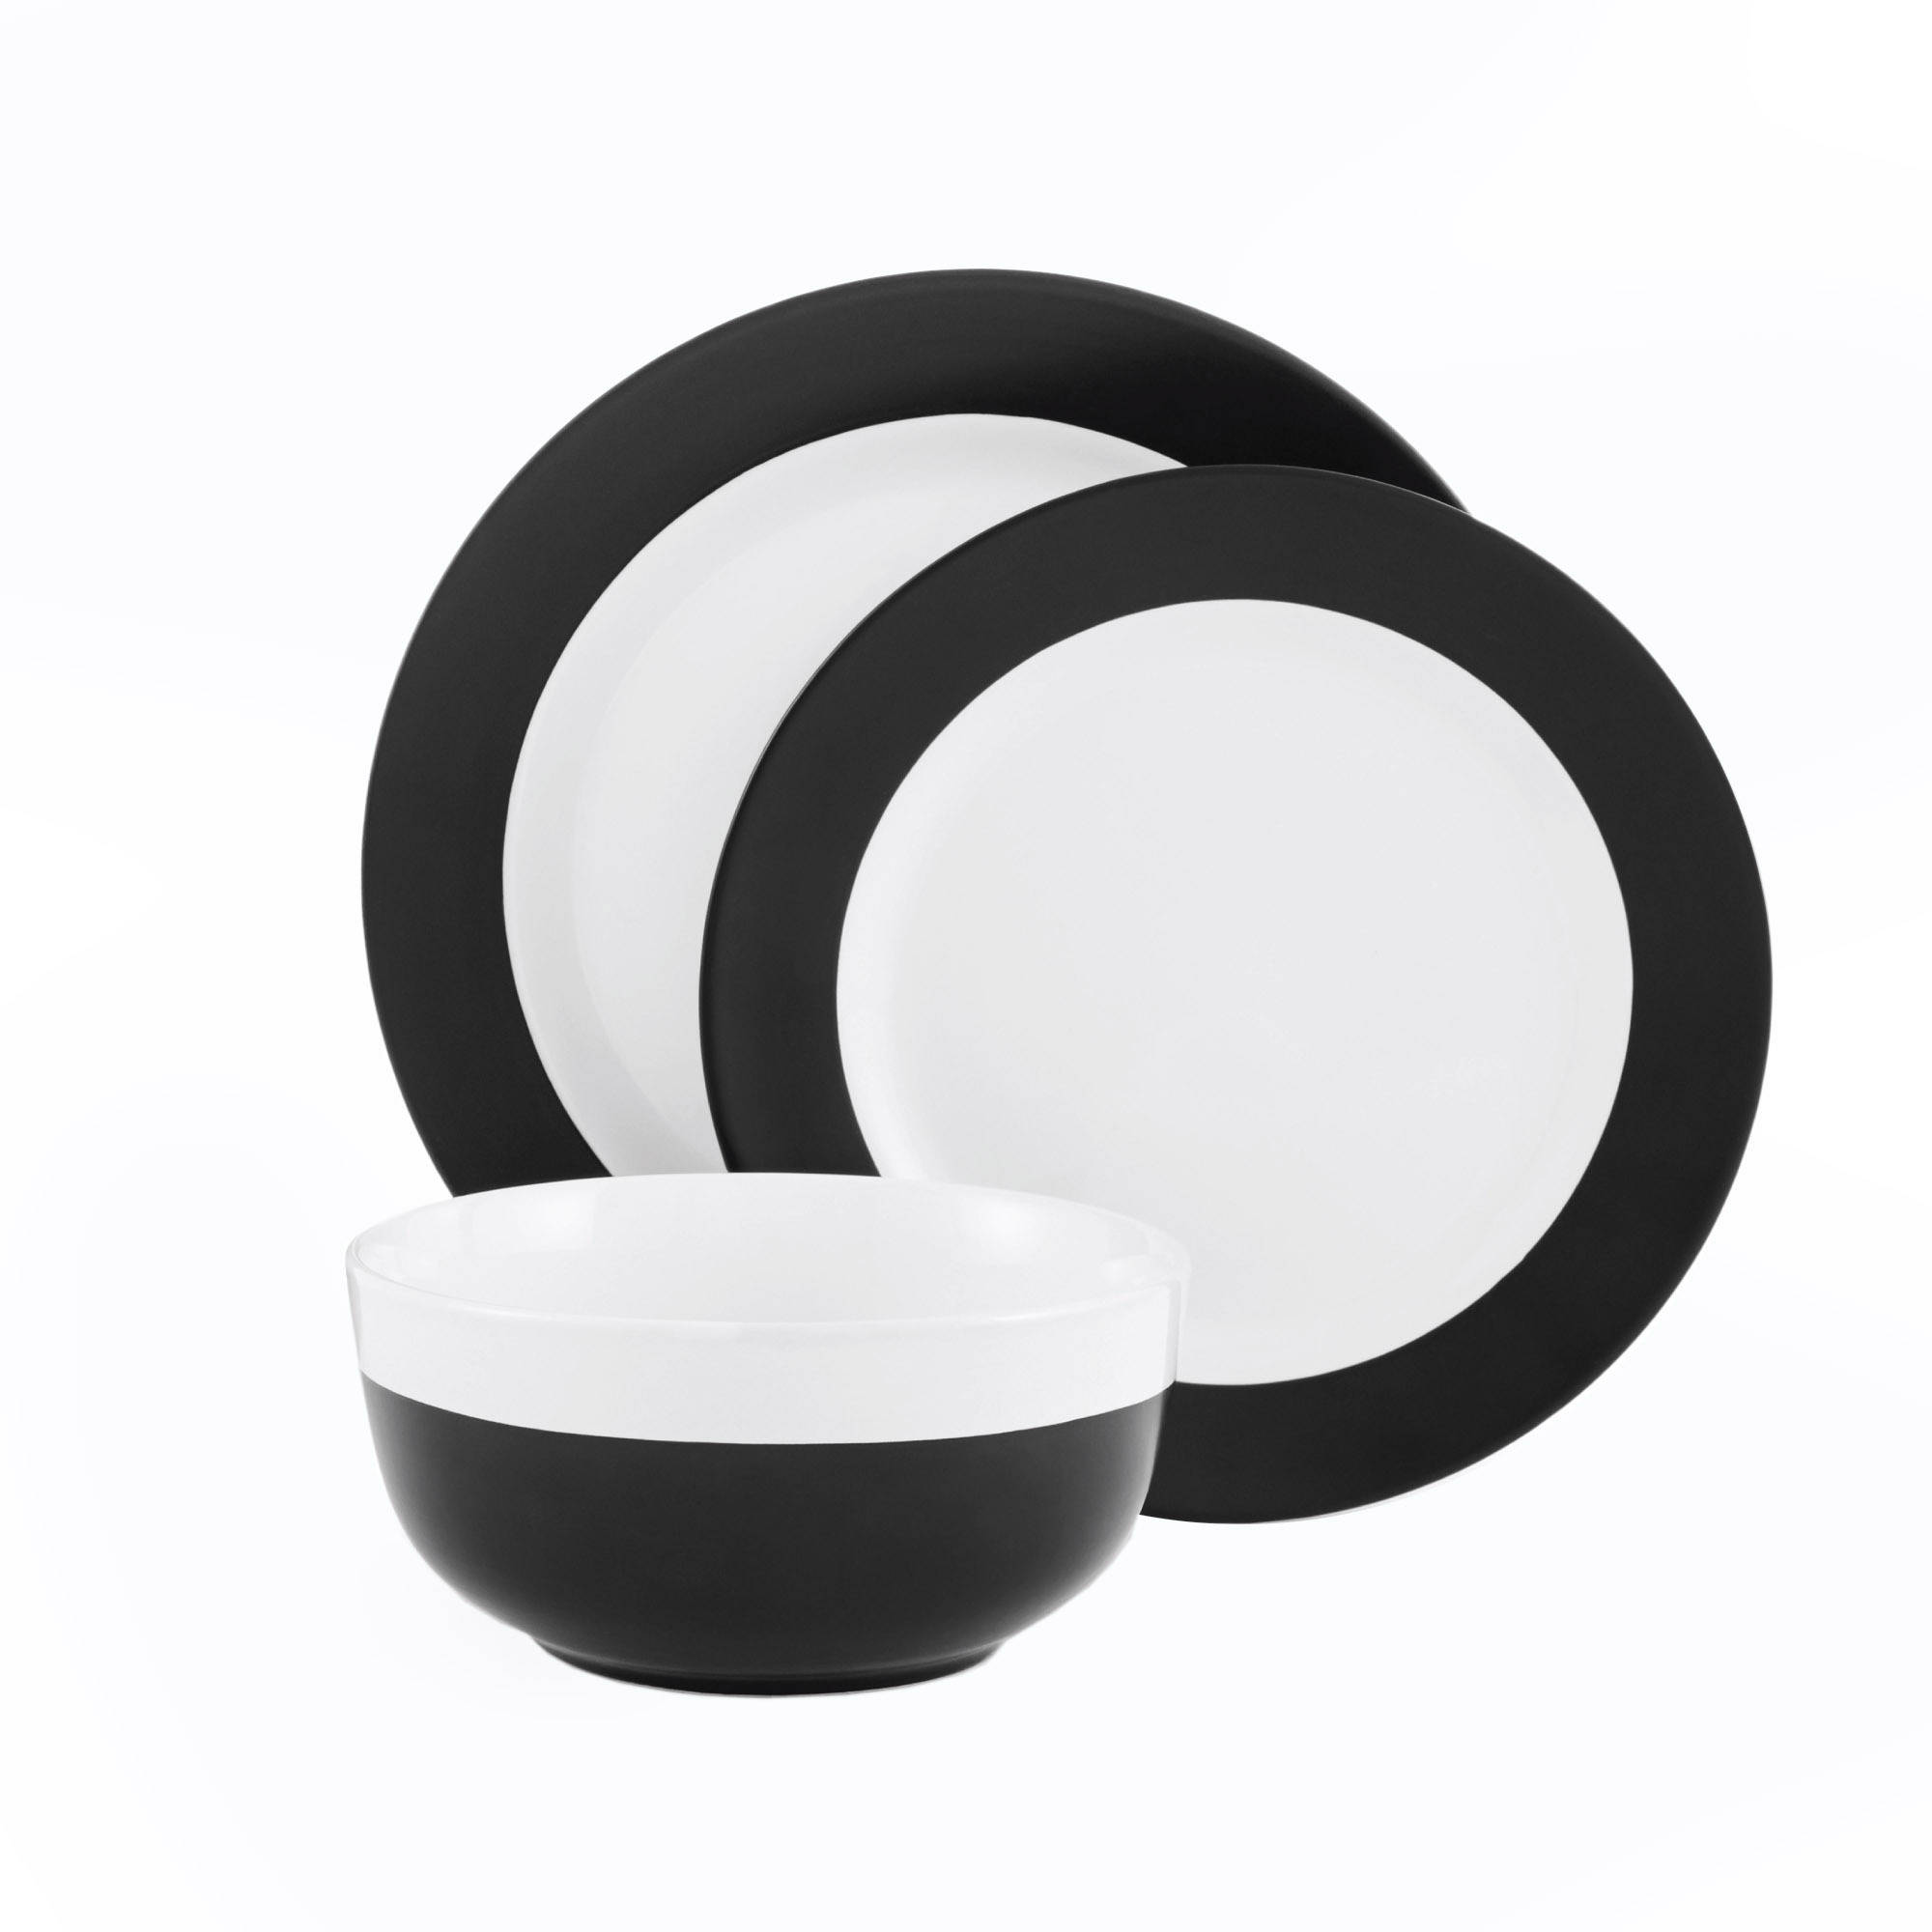 Mainstays 12-Piece Black and White Dinnerware Set  sc 1 st  Walmart & Mainstays 12-Piece Black and White Dinnerware Set - Walmart.com